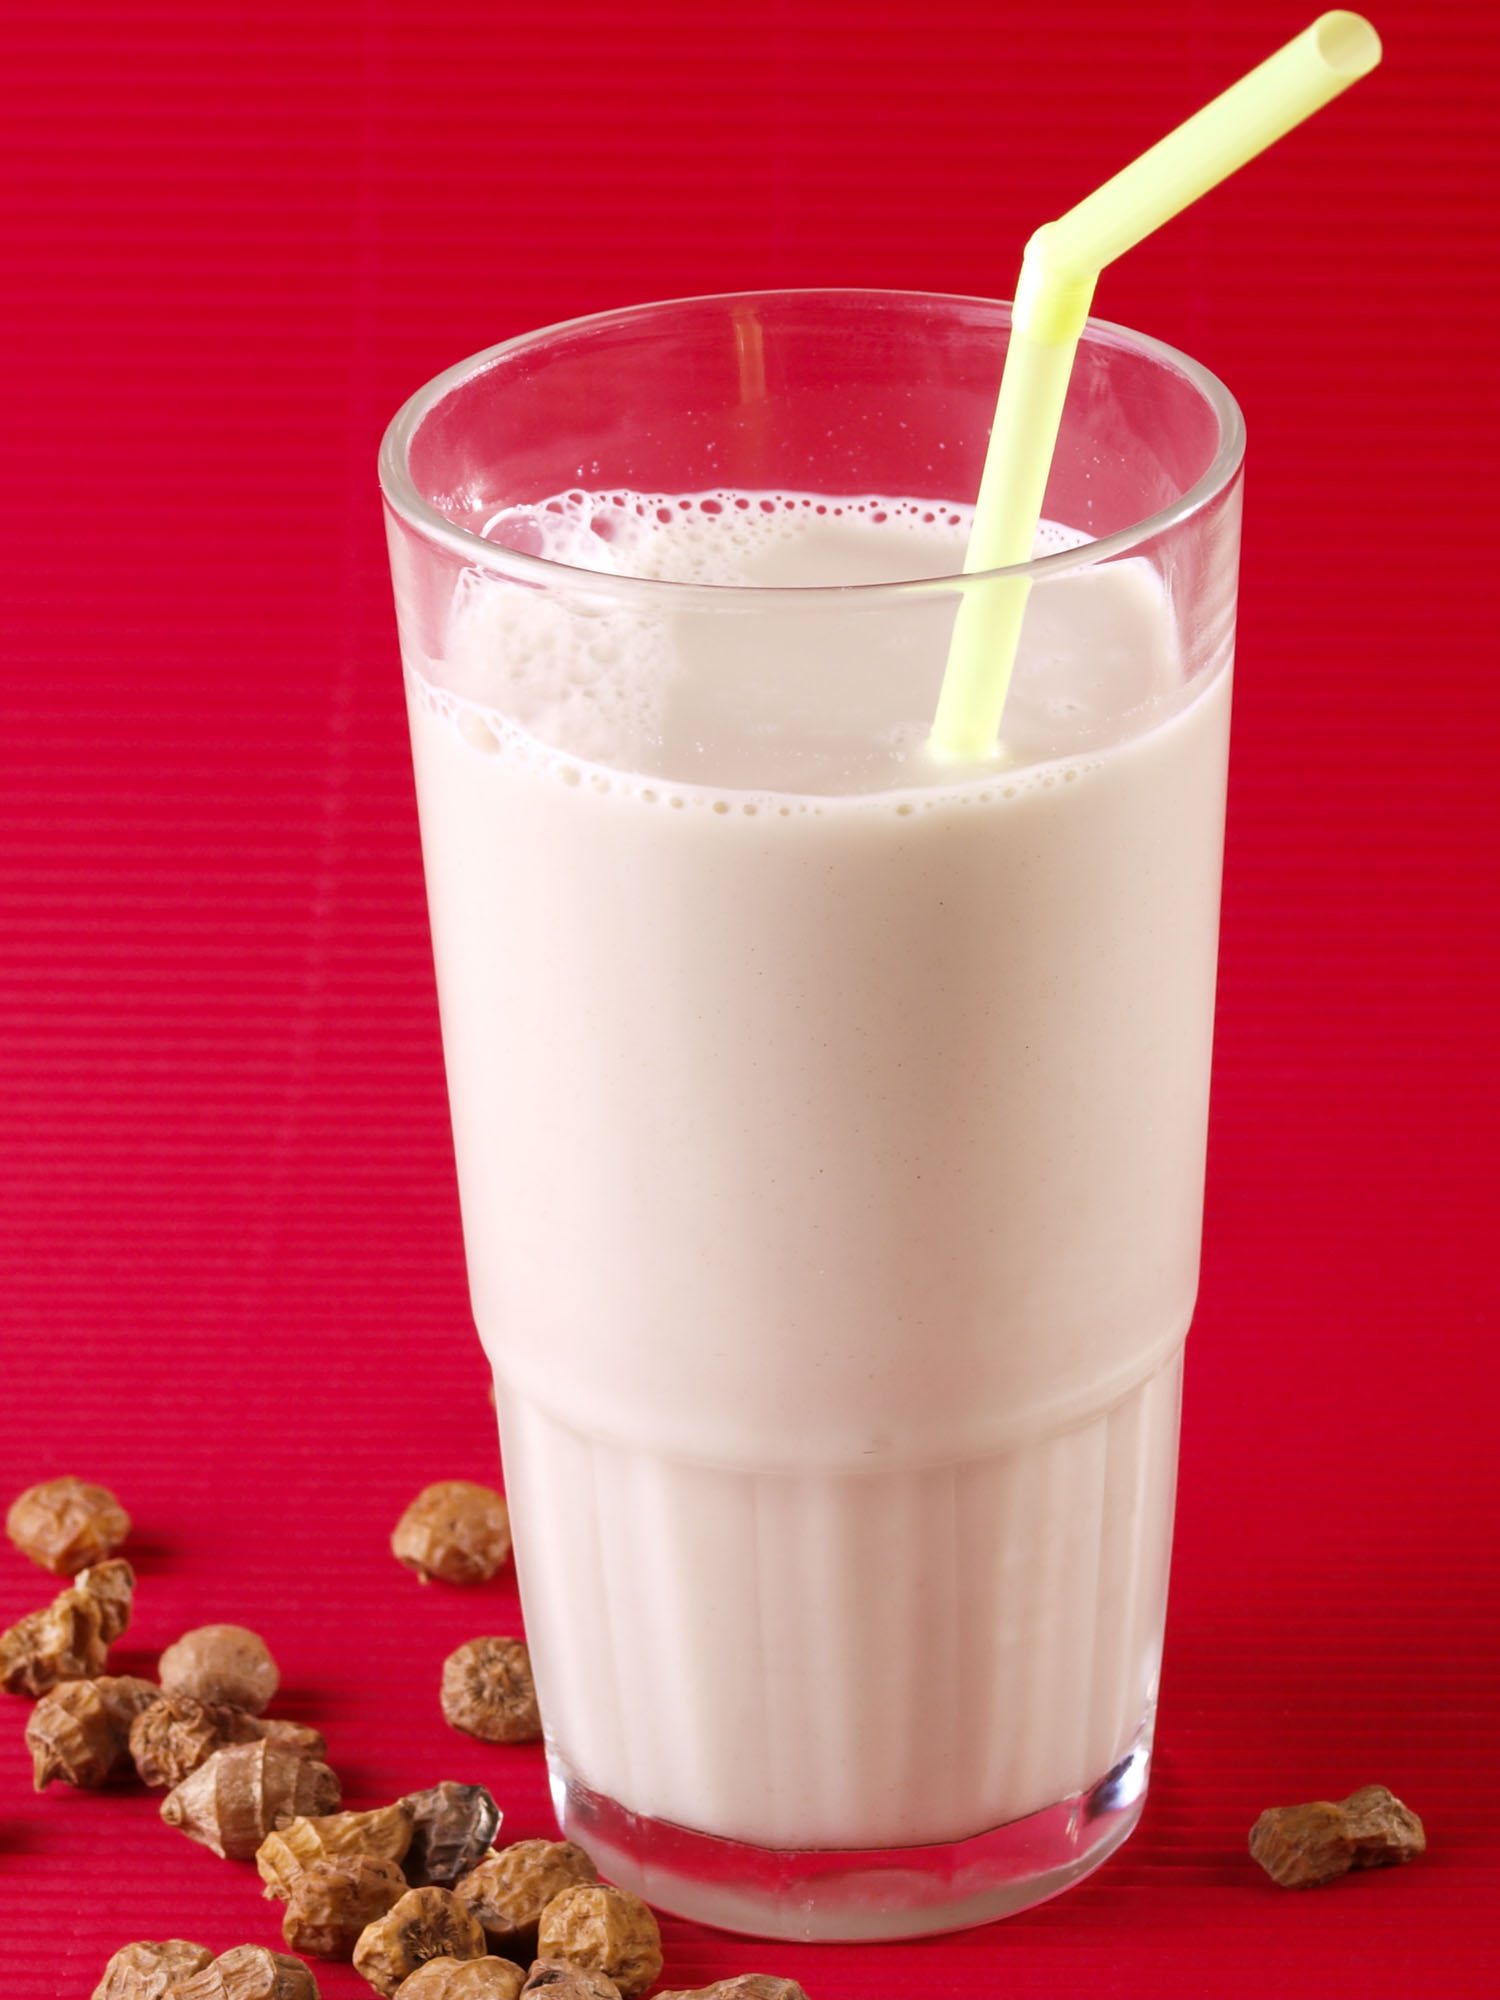 Horchata on a red background with a straw